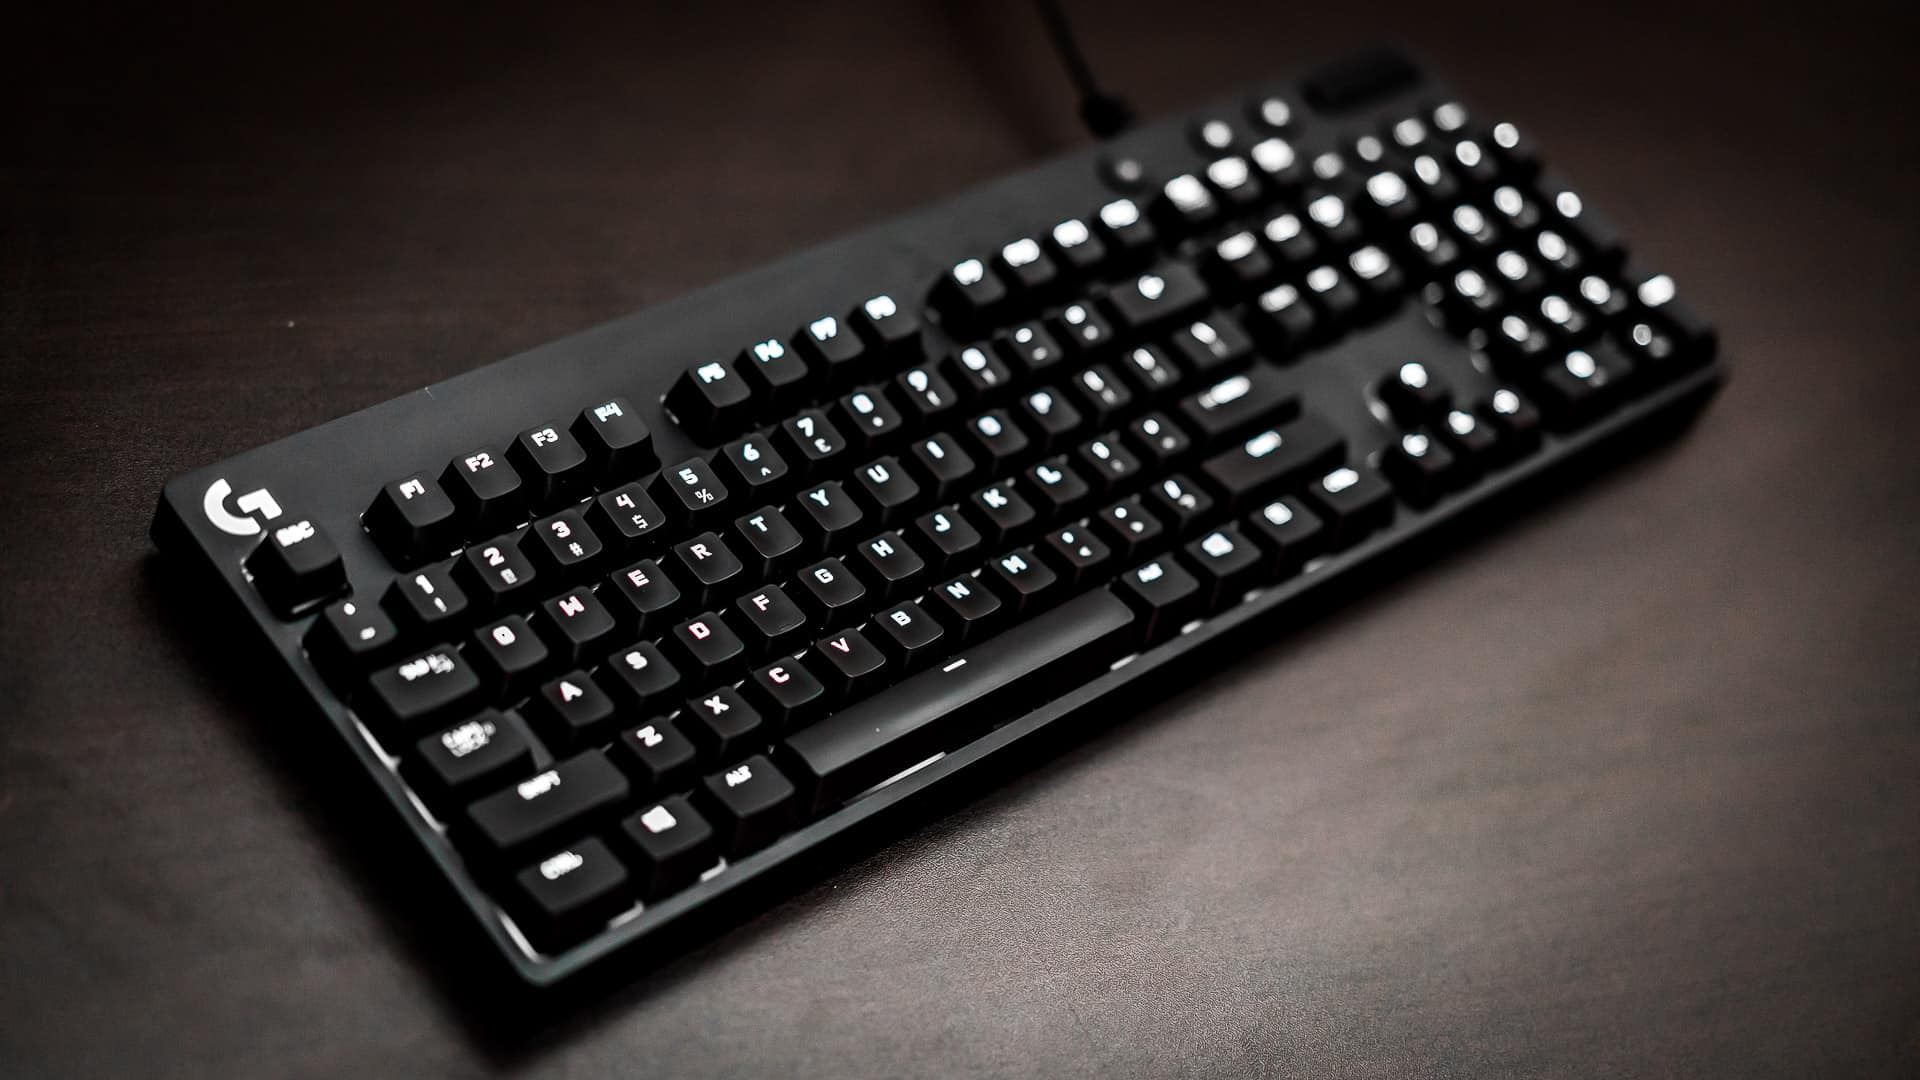 Logitech G610 Gaming Keyboard